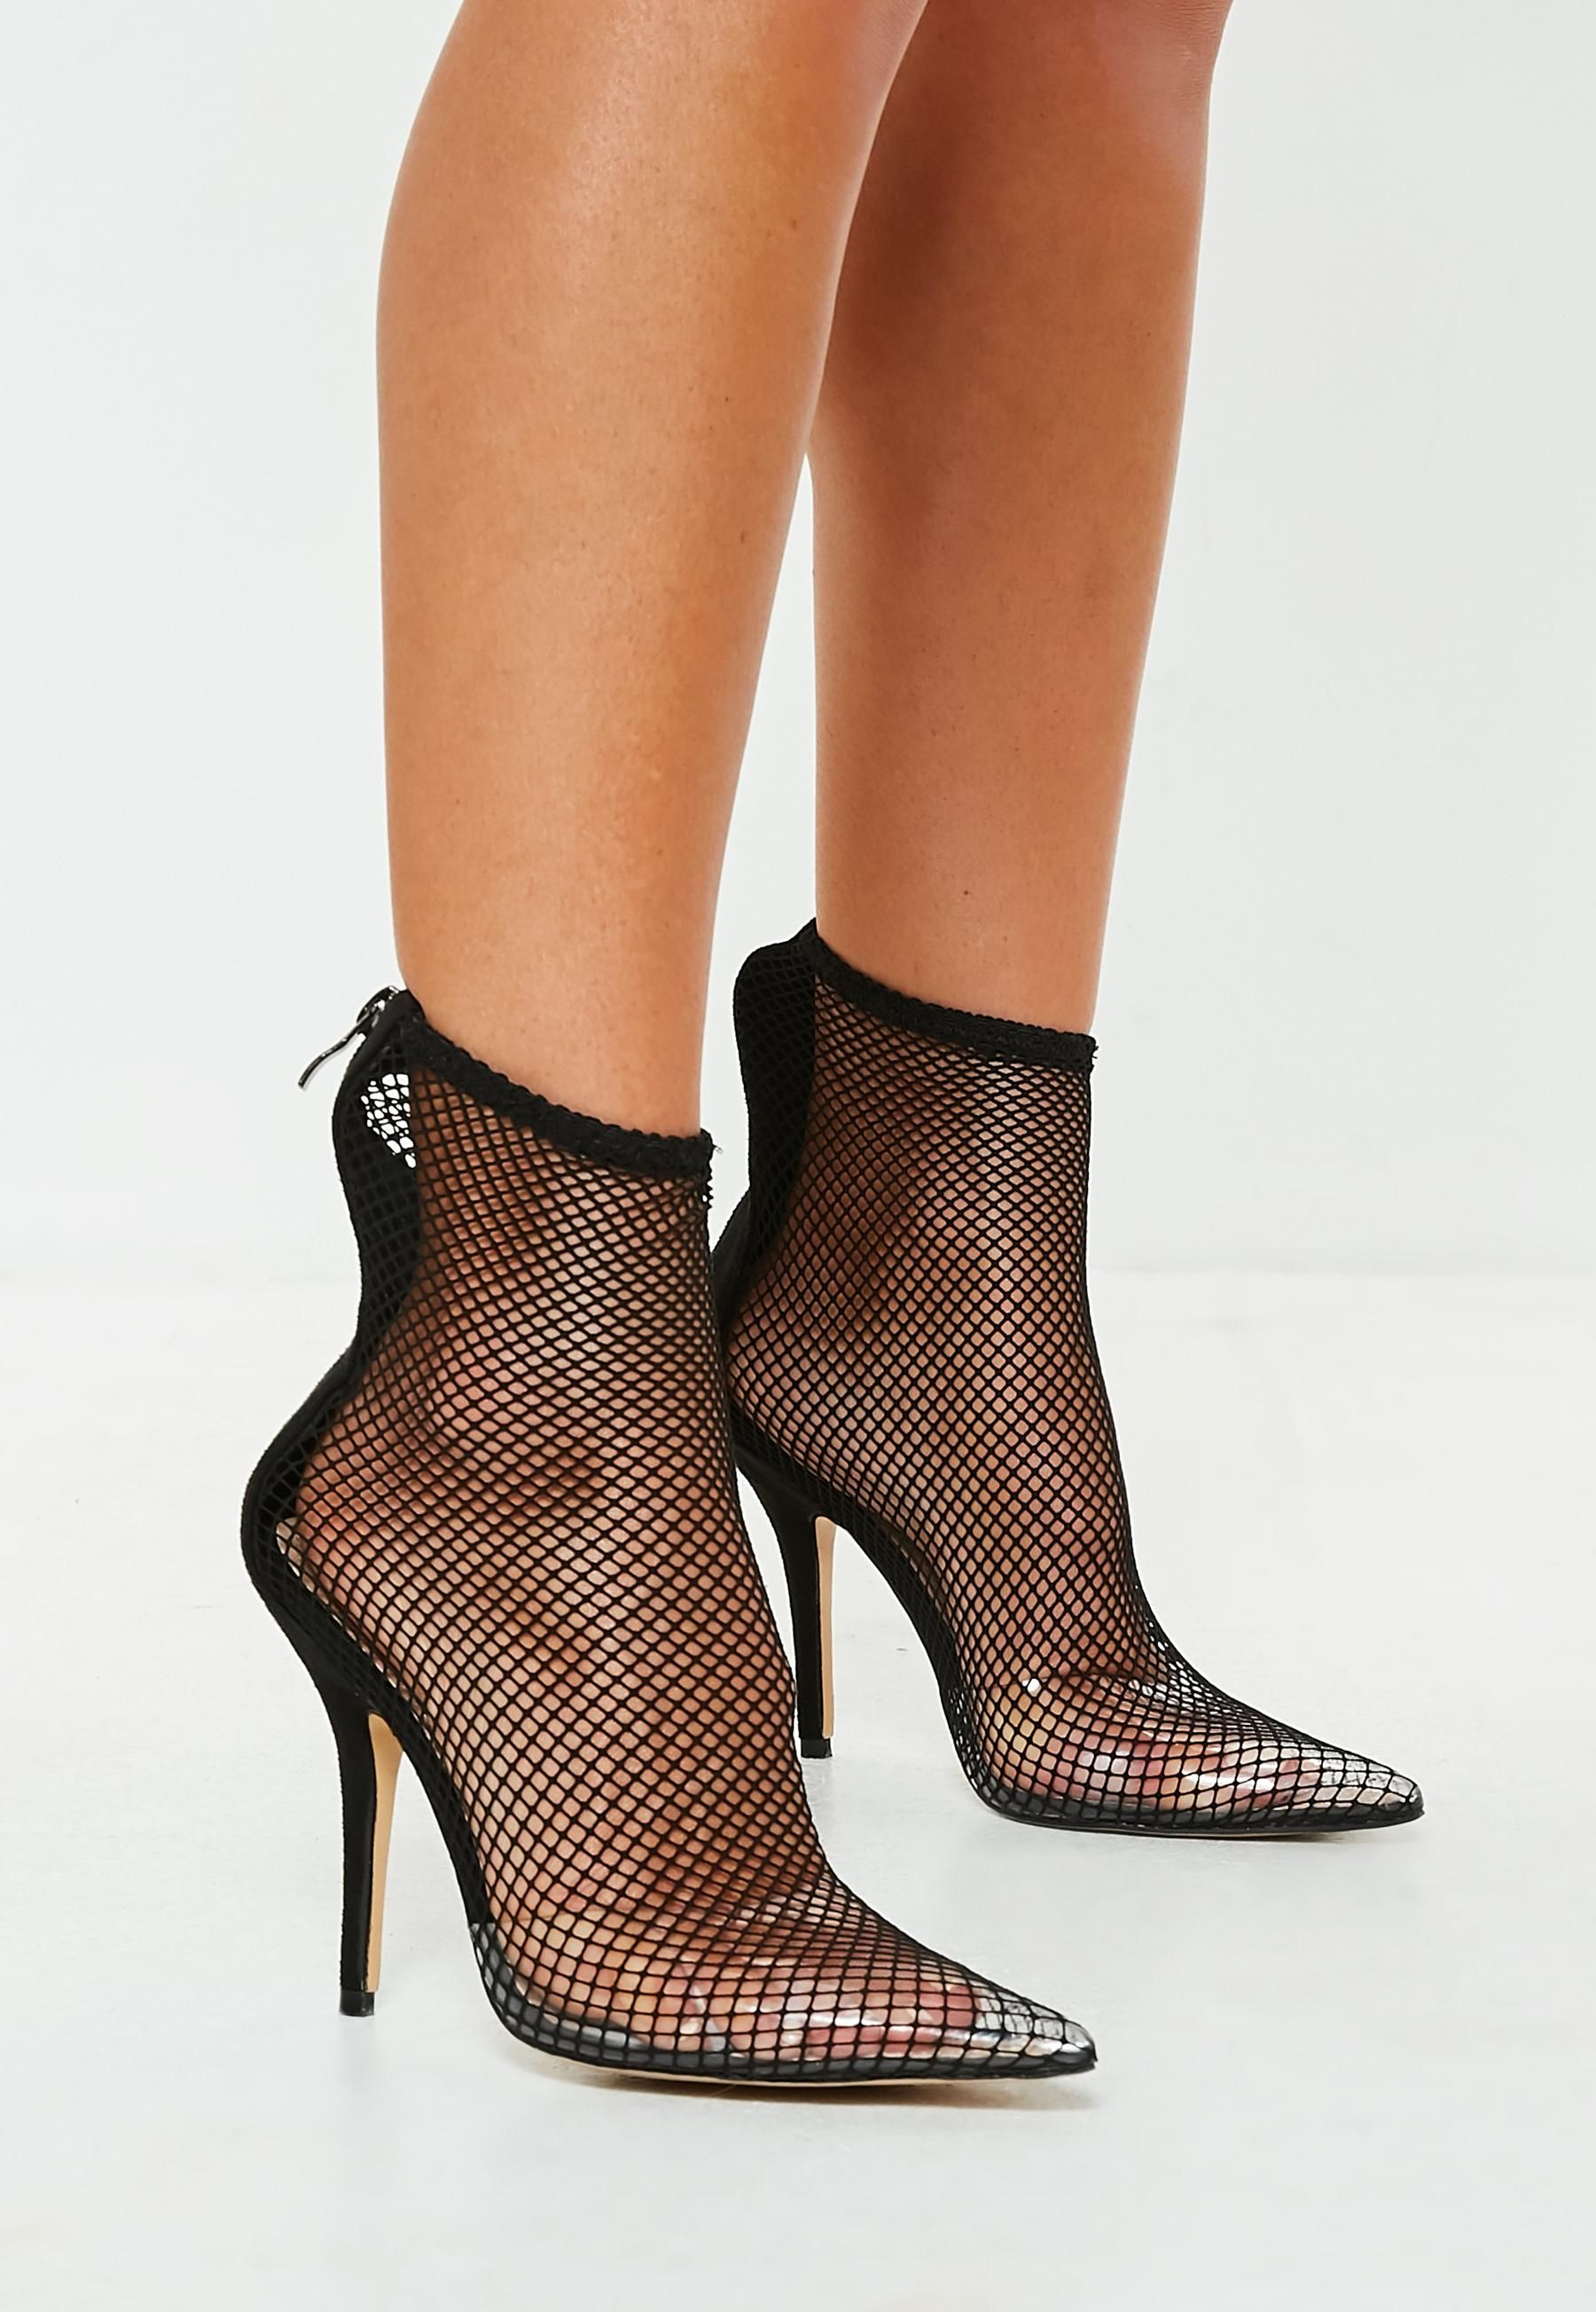 a489de8f6d5 Black Fishnet Boots | Missguided | Boots in 2019 | Shoes, Heels ...